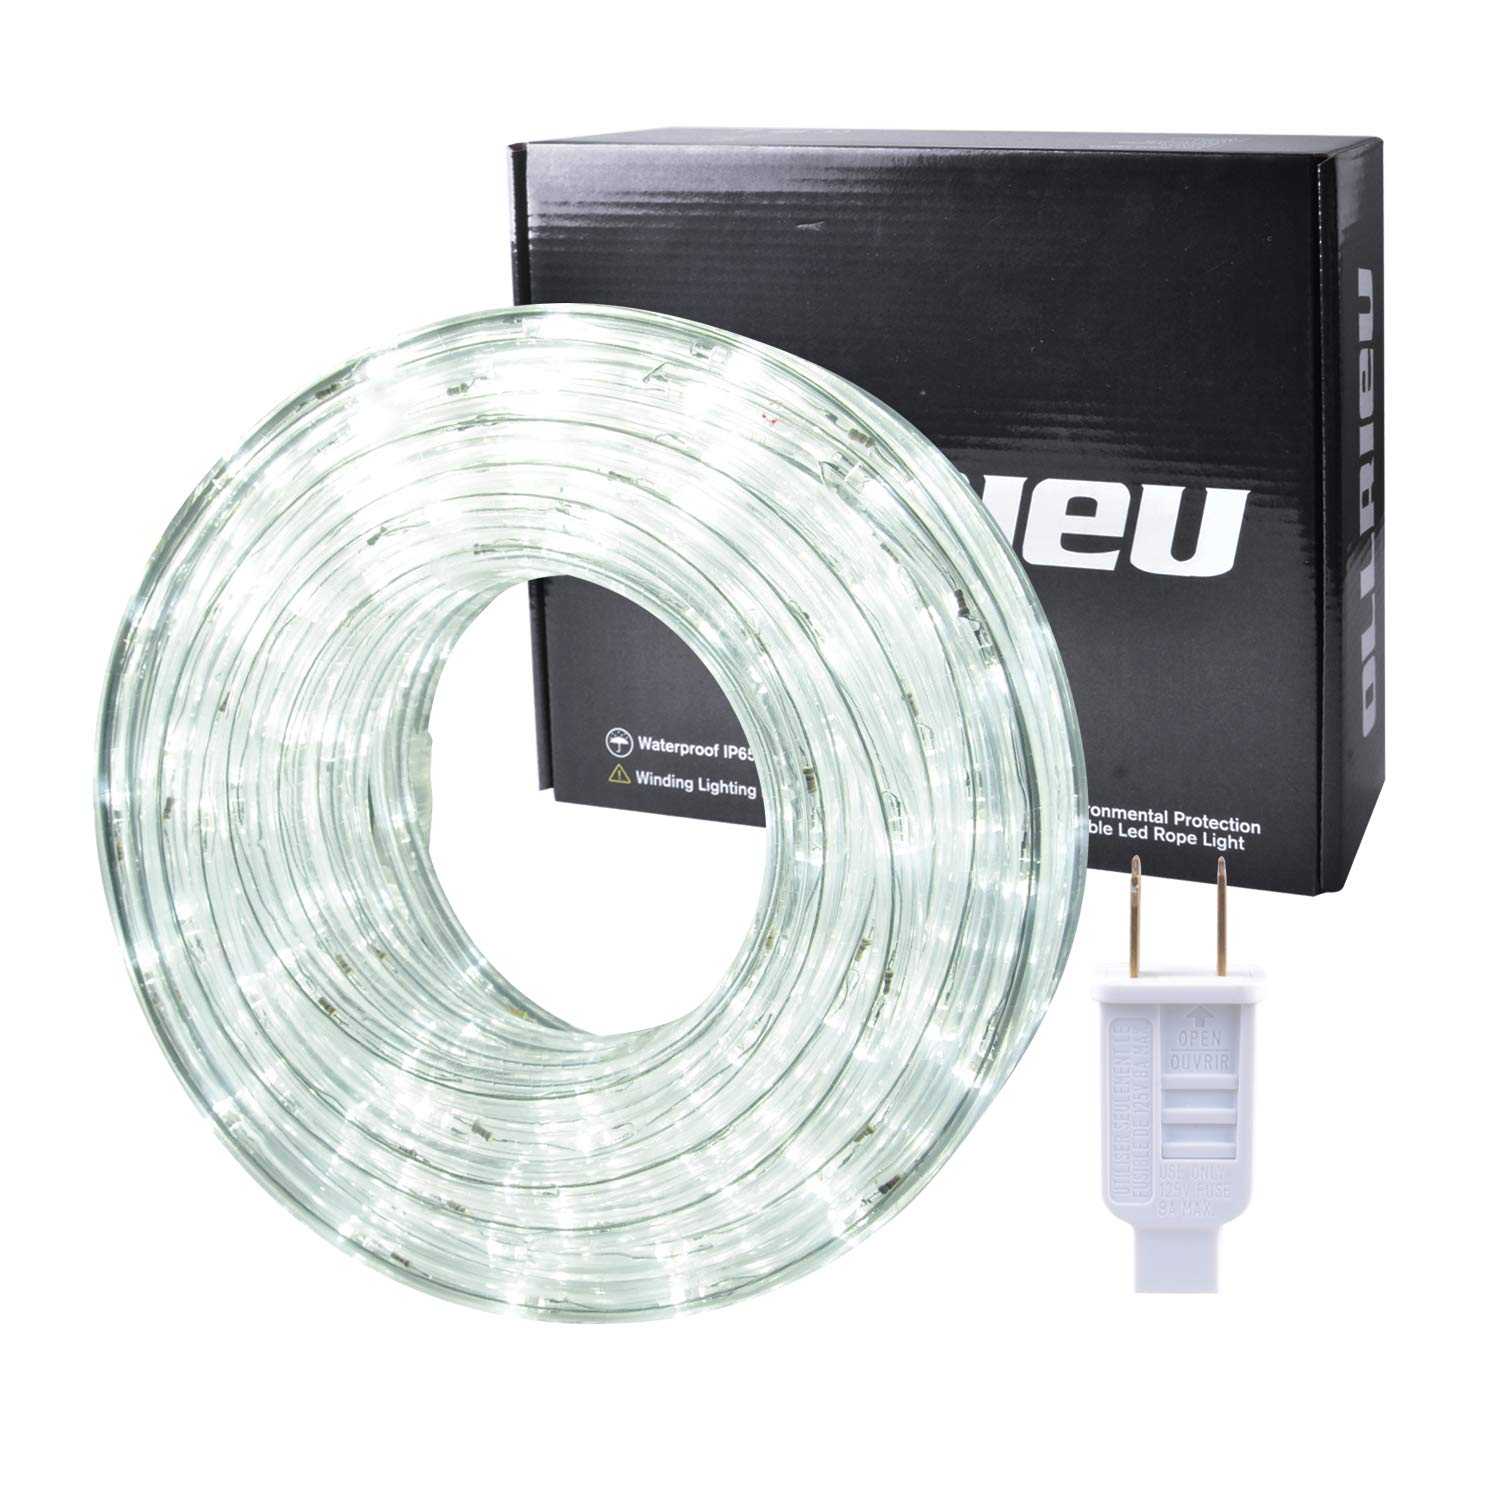 ollrieu 50ft/15m LED Rope Lights,Waterproof 360 Led Strip Light Daylight White, 110V Power Plug Built-in Fuses, Connectable Indoor Outdoor Decoration Lighting for Patio Cabinet Room Party Kitchen